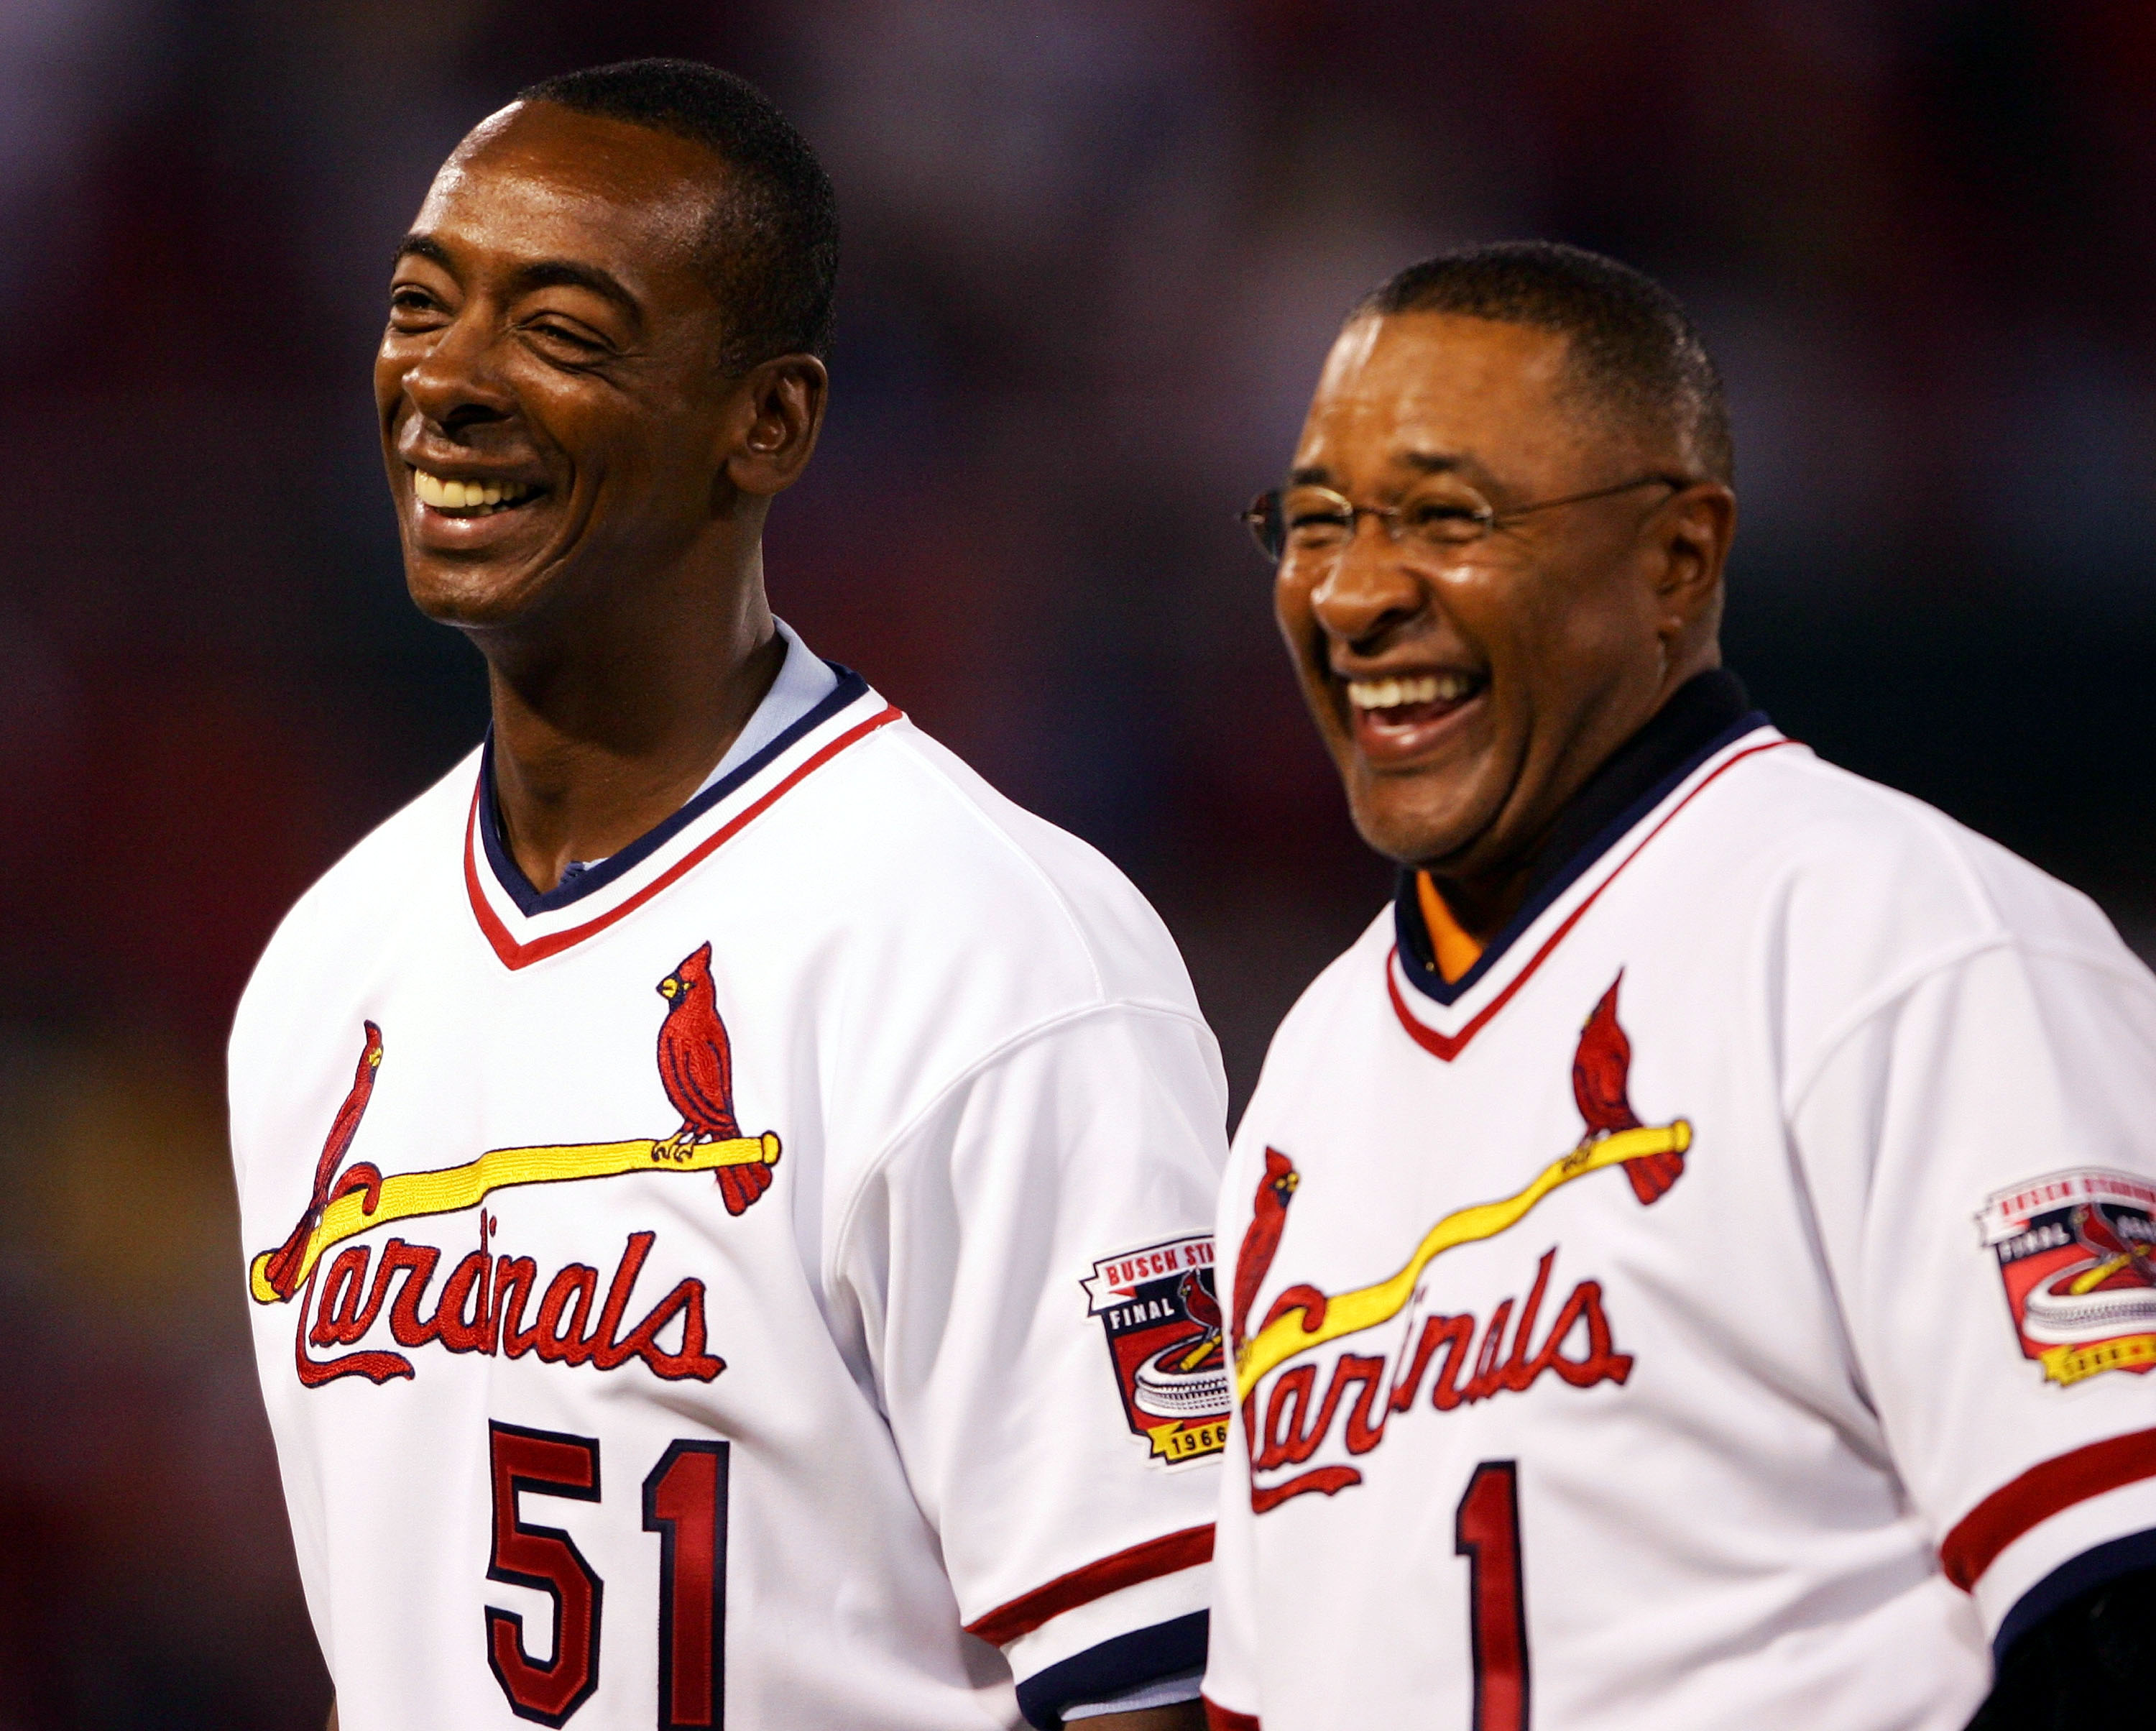 ST. LOUIS - SEPTEMBER 30:  Ozzie Smith #1 and Willie McGee #51 of the 1985 St. Louis Cardinals team stand on the field before the game on September 30, 2005 at Busch Stadium in St. Louis, Missouri.  (Photo by Elsa/Getty Images).